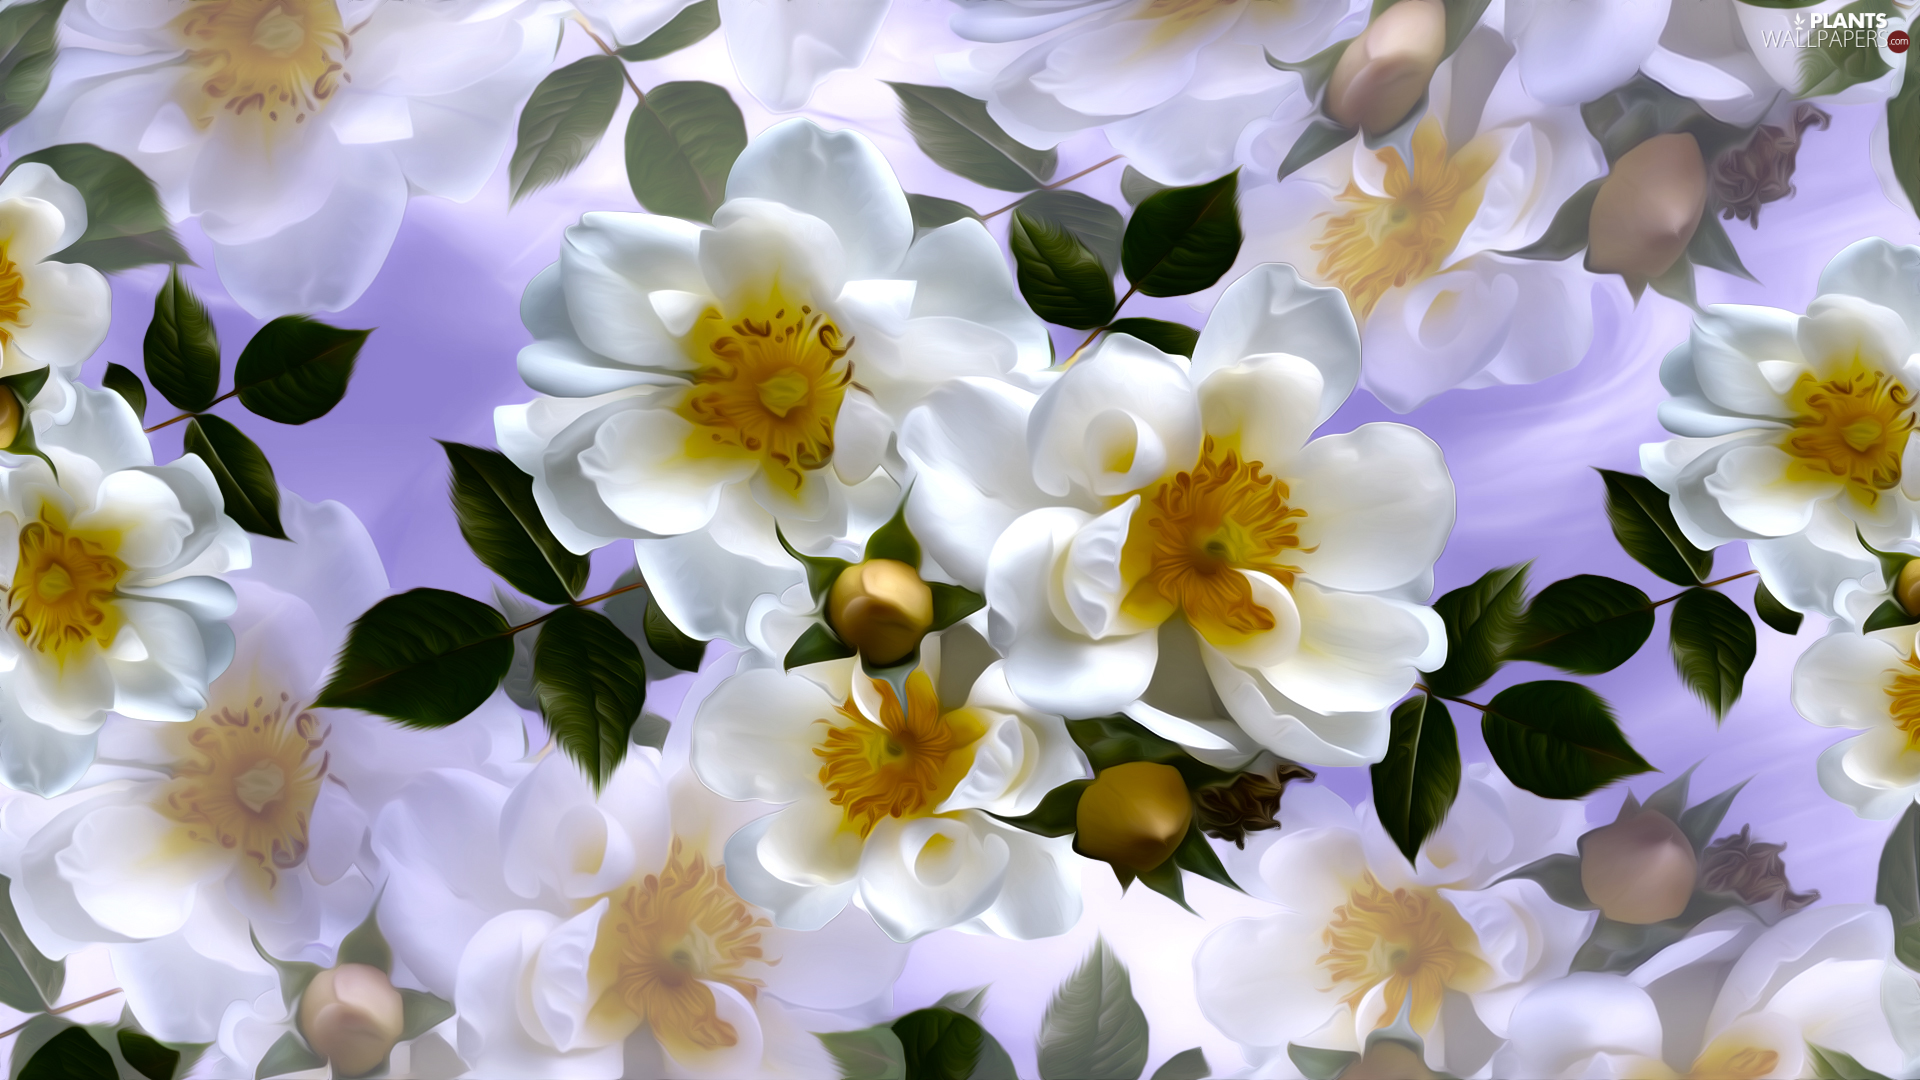 White, Briar, graphics, Flowers